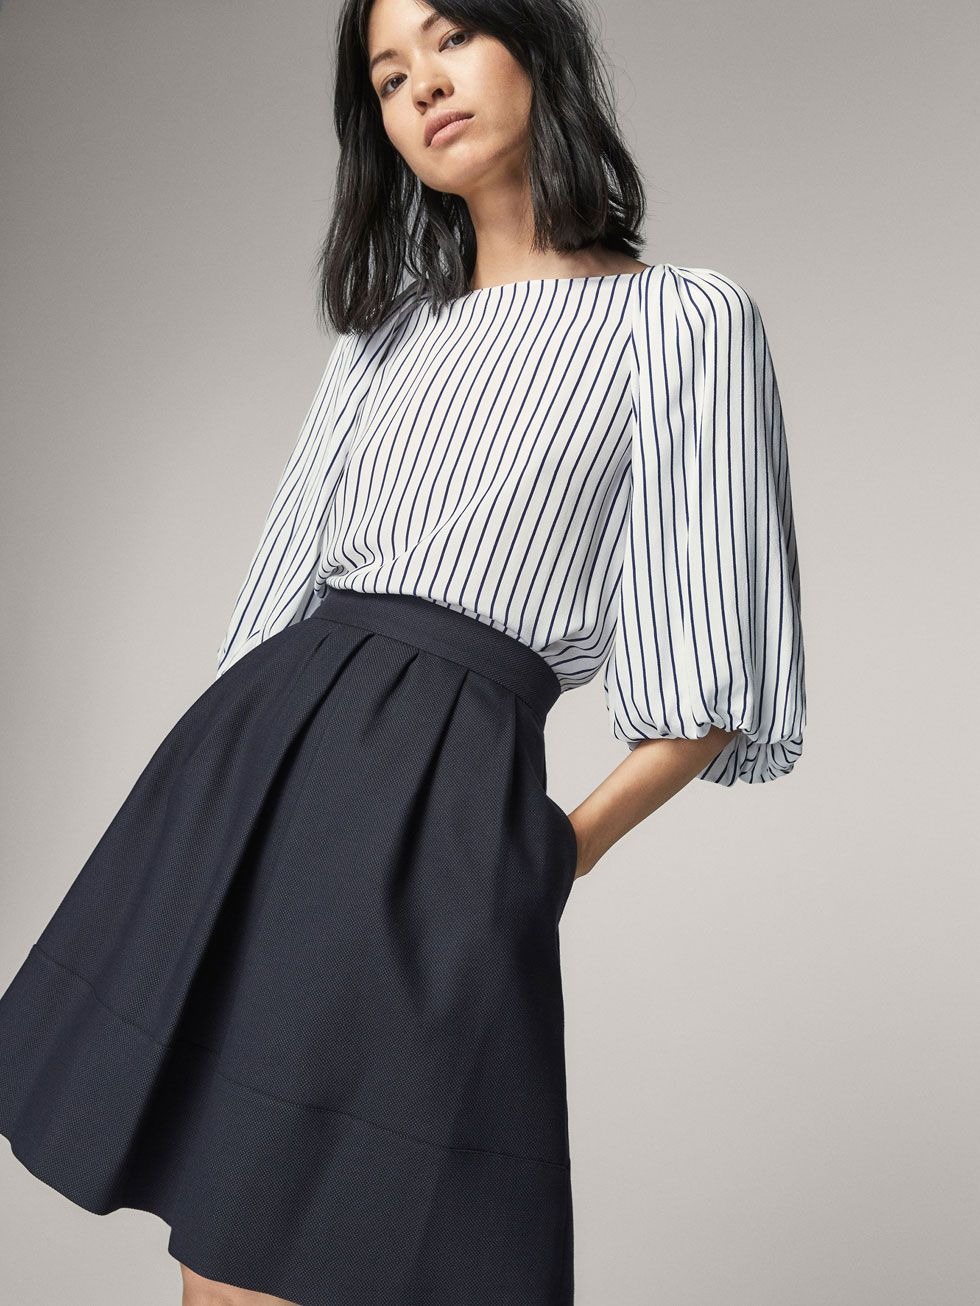 f8999b6fbf2 Spring summer 2017 Women´s SKIRT WITH PLEATED DETAIL at Massimo Dutti for  98.5. Effortless elegance!